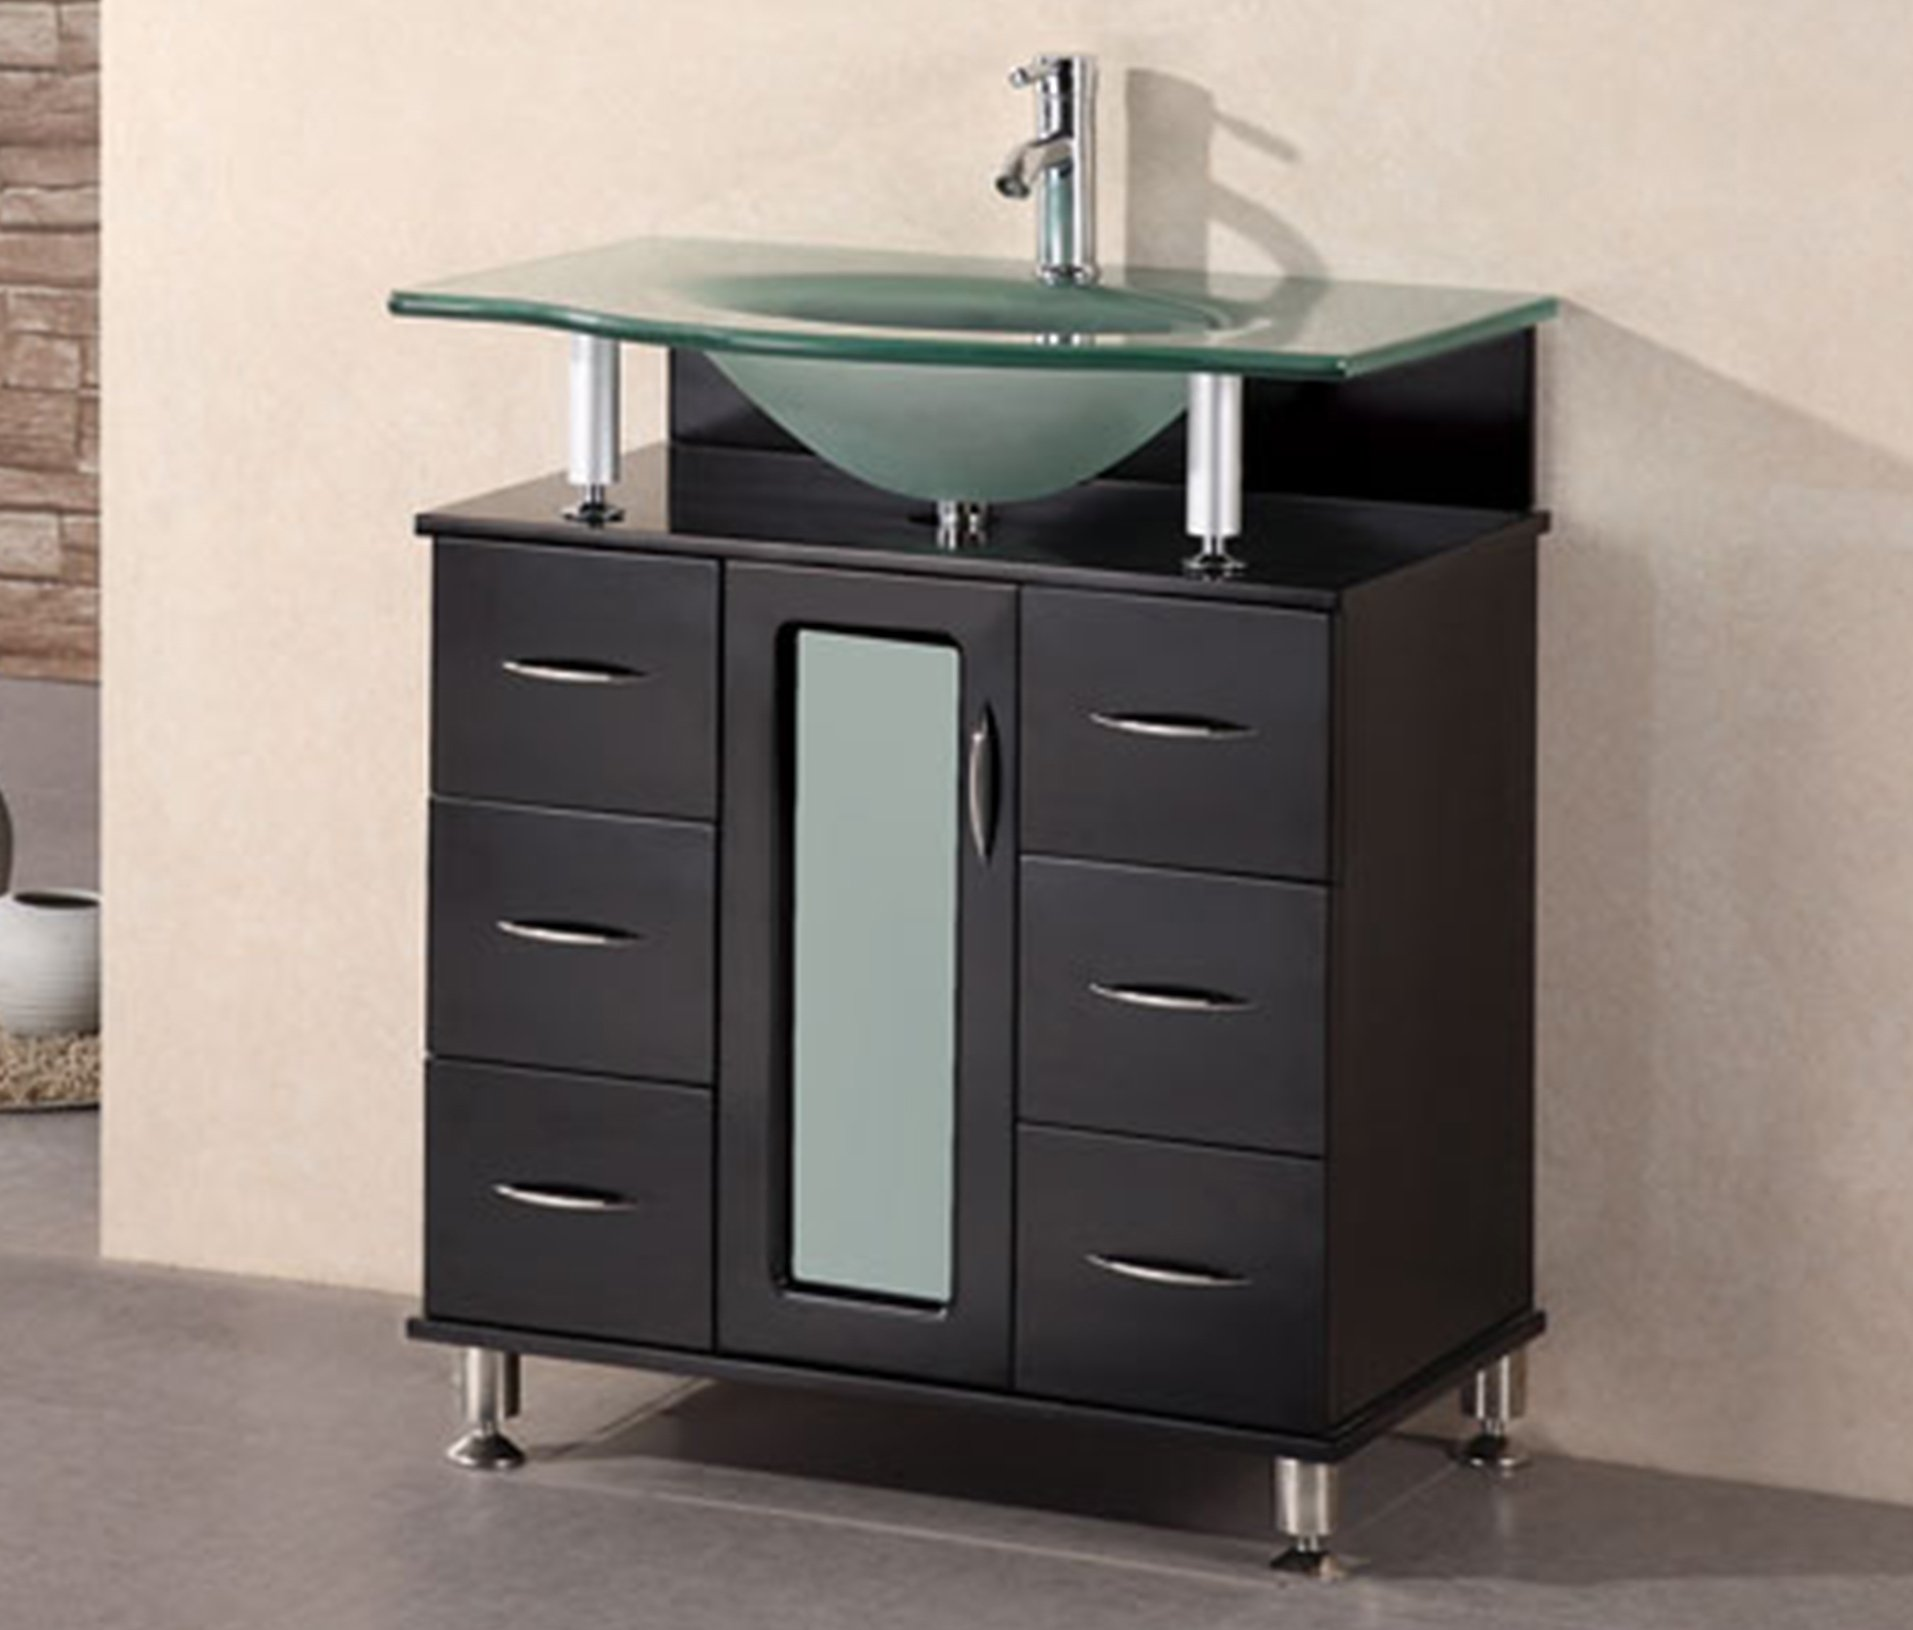 Design Element Huntington Single Drop-In Sink Vanity Set with Integrated Tempered Glass Countertop, 30-Inch